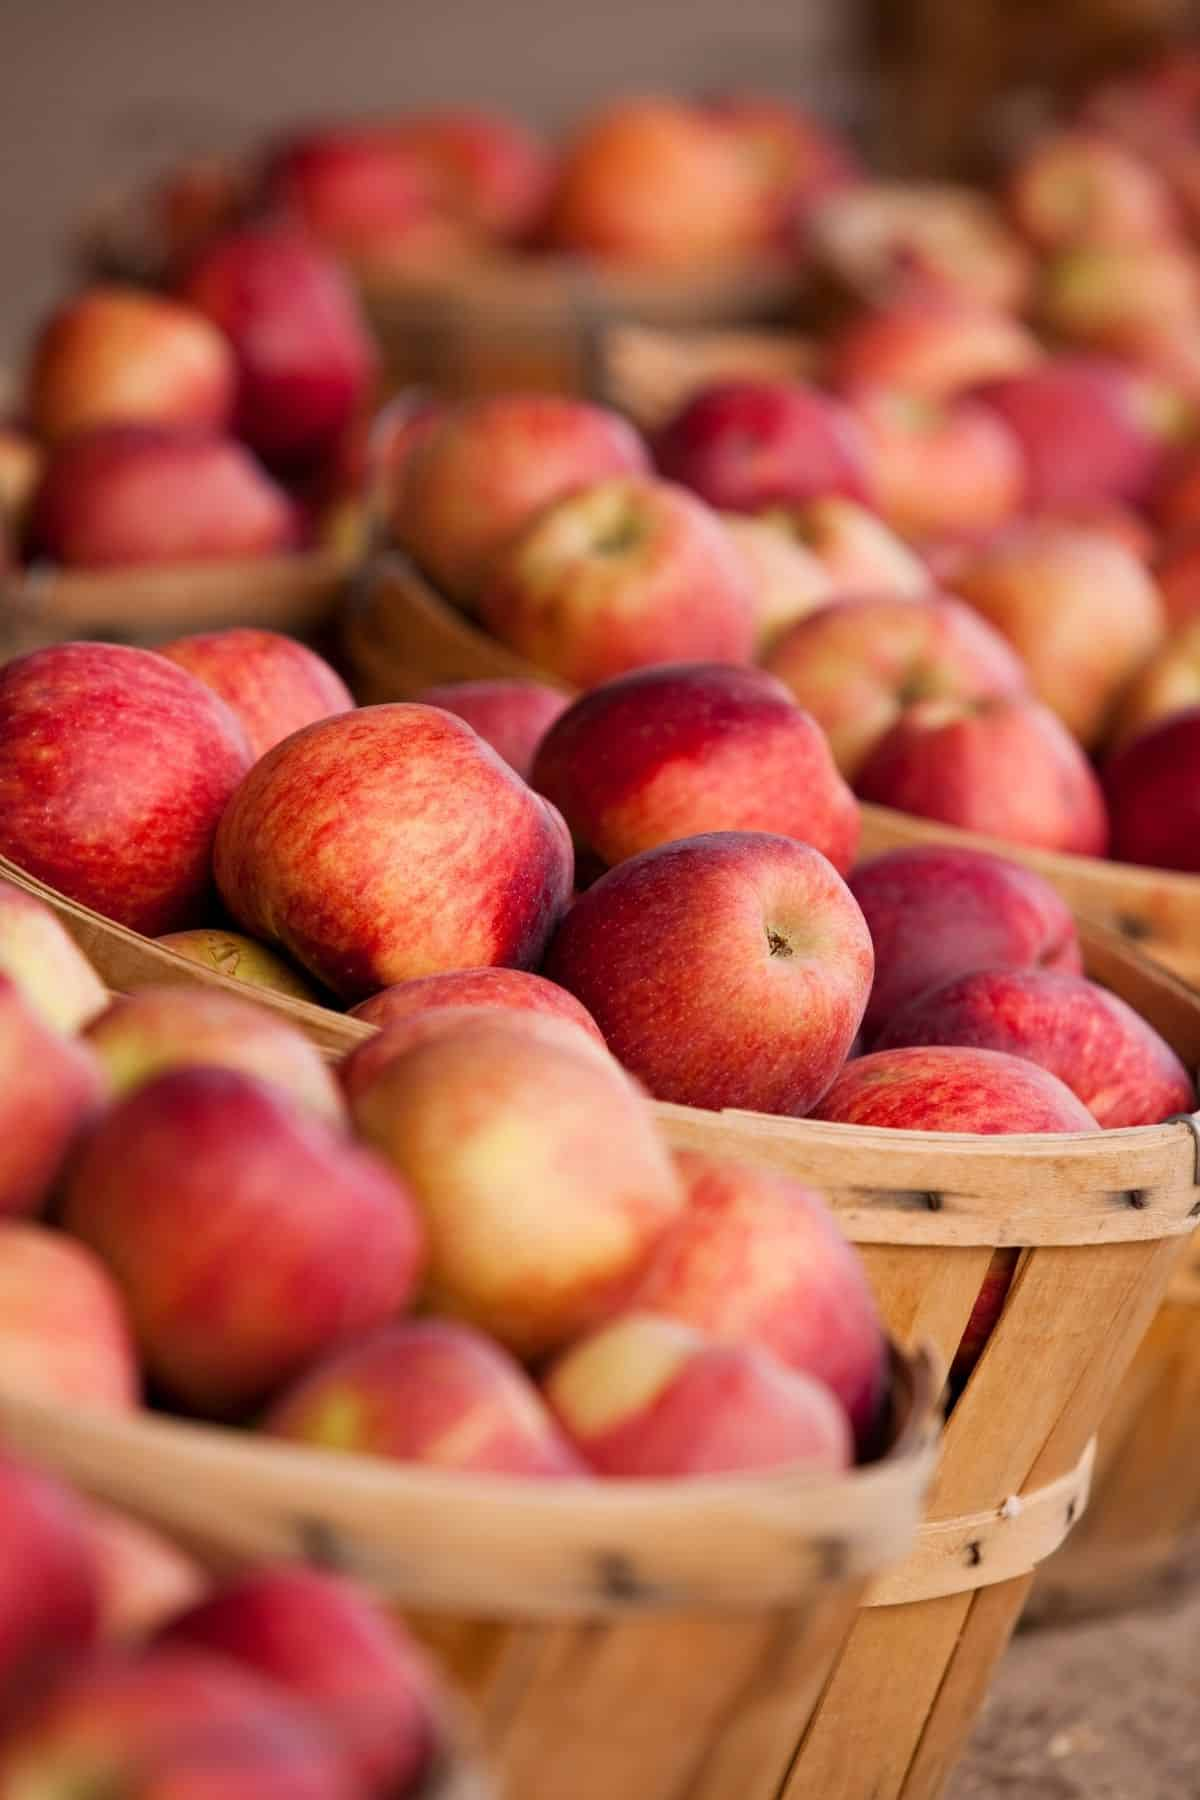 bushels of apples for sale